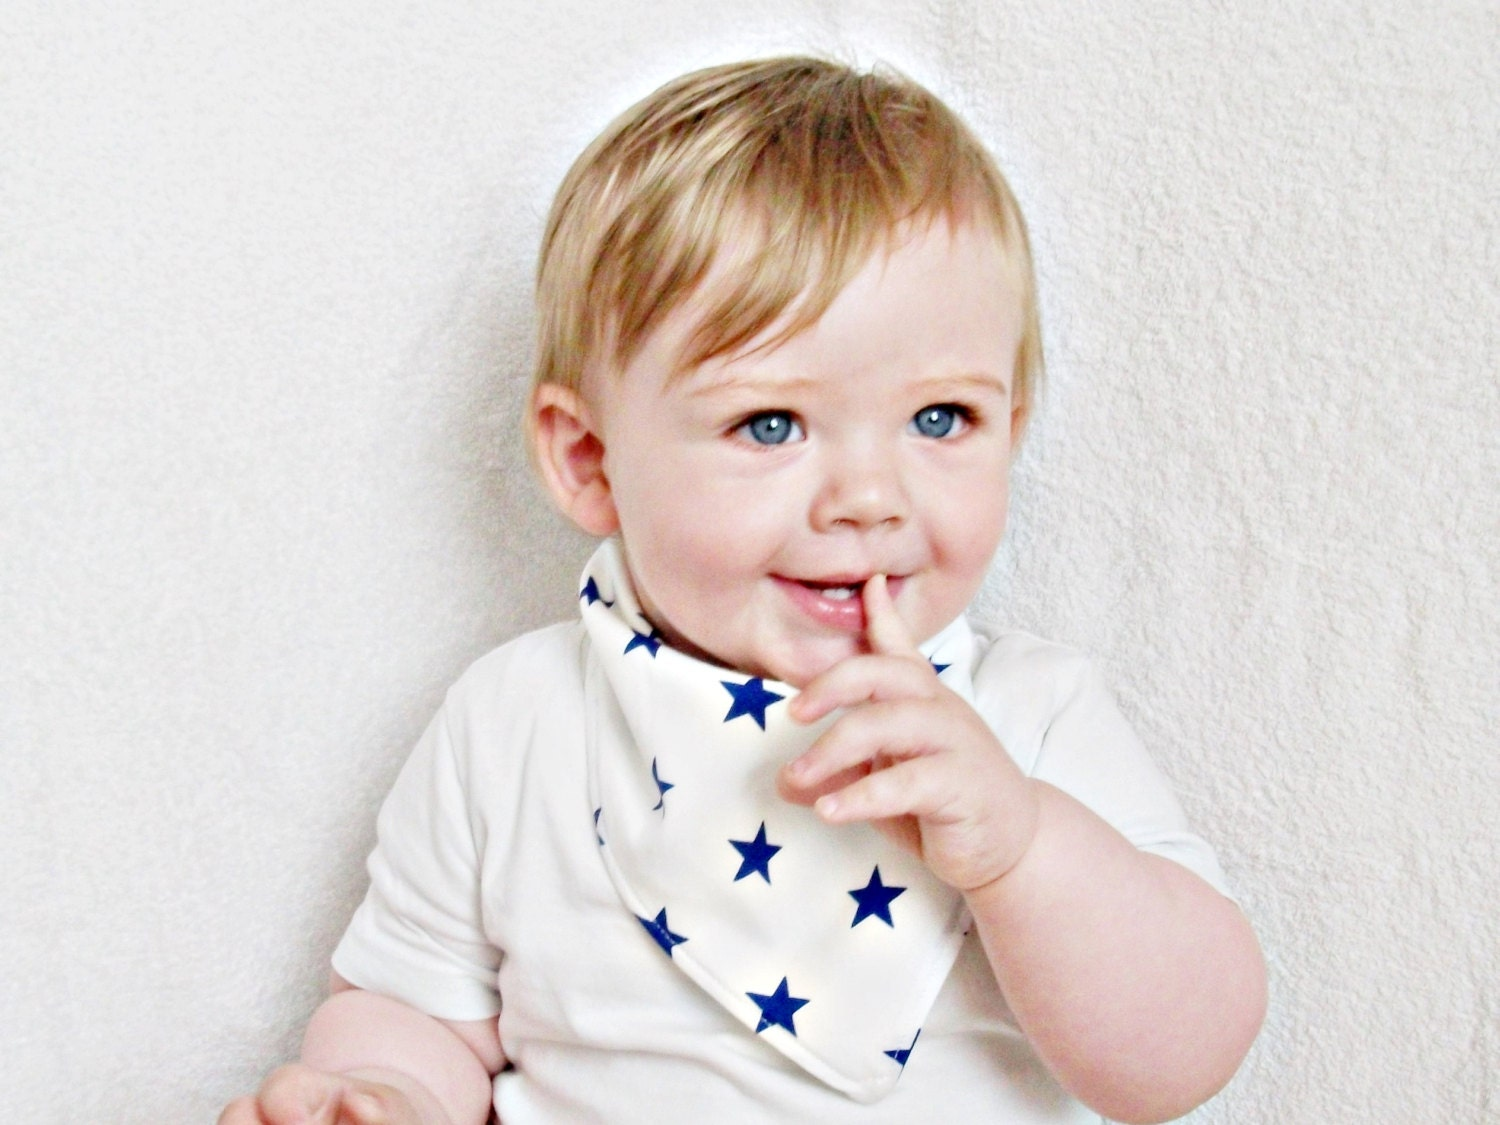 Some babies drool more than others, but in general, all babies drool and they drool a lot. Thanks to products like a bib or a Baby Drool Scarf parents can keep their clothes dry and their babies clothes dry too as these products are made to catch and absorb the drool.